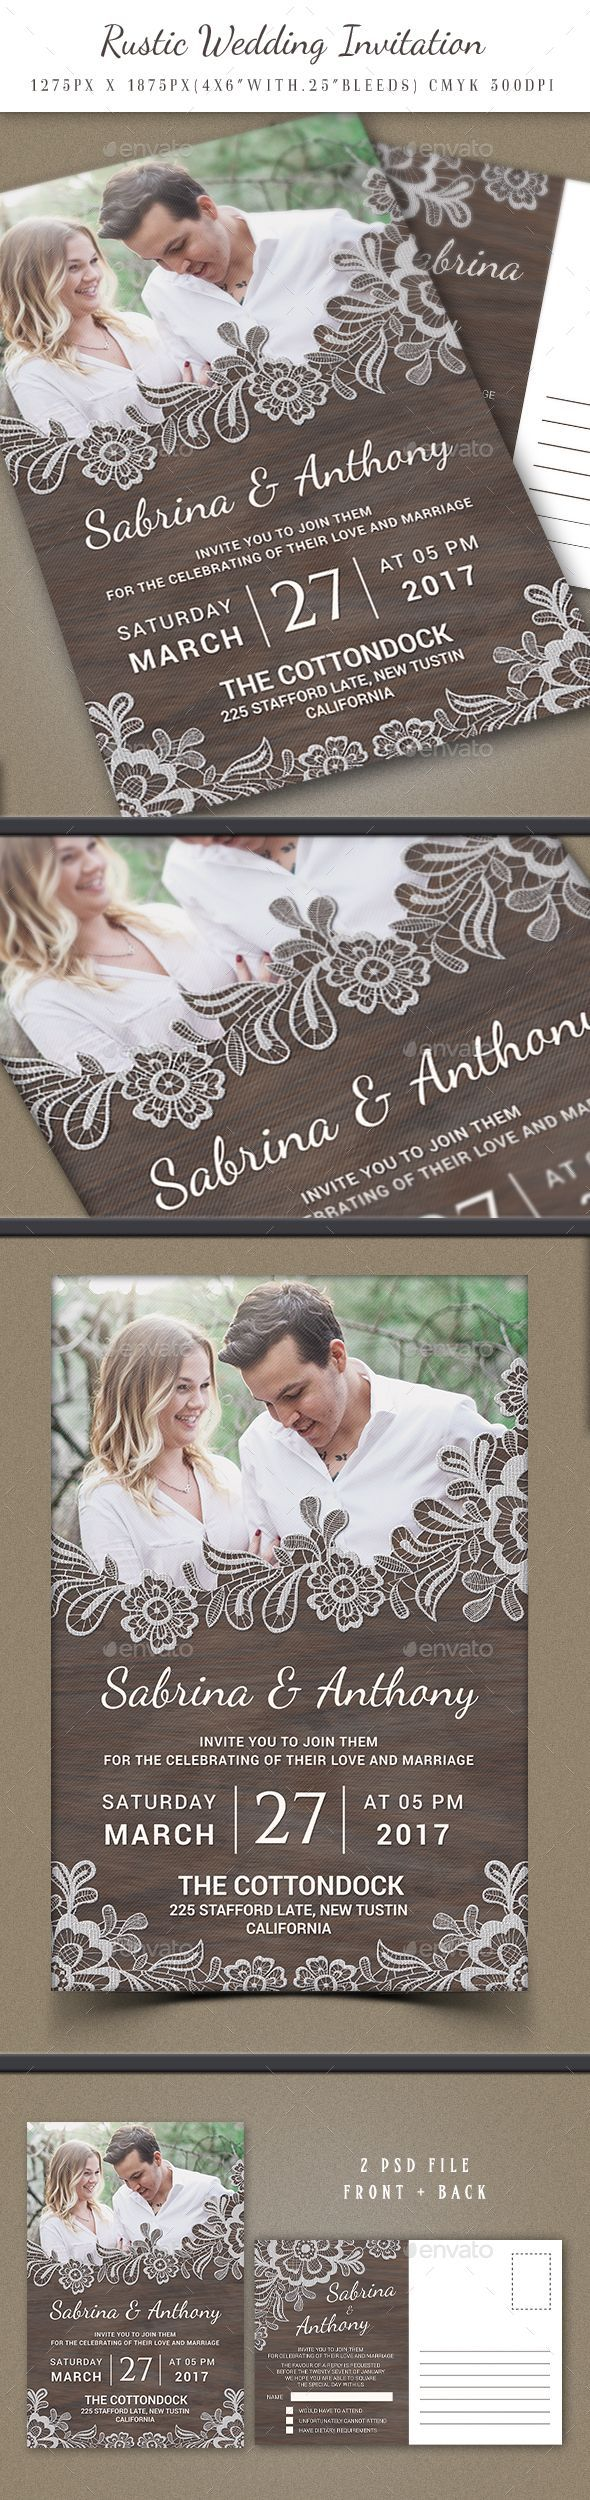 lotus flower wedding invitations%0A Rustic Wedding Invitation by Goodgraph Rustic Wedding InvitationThe PSD  file is setup at     px x     px